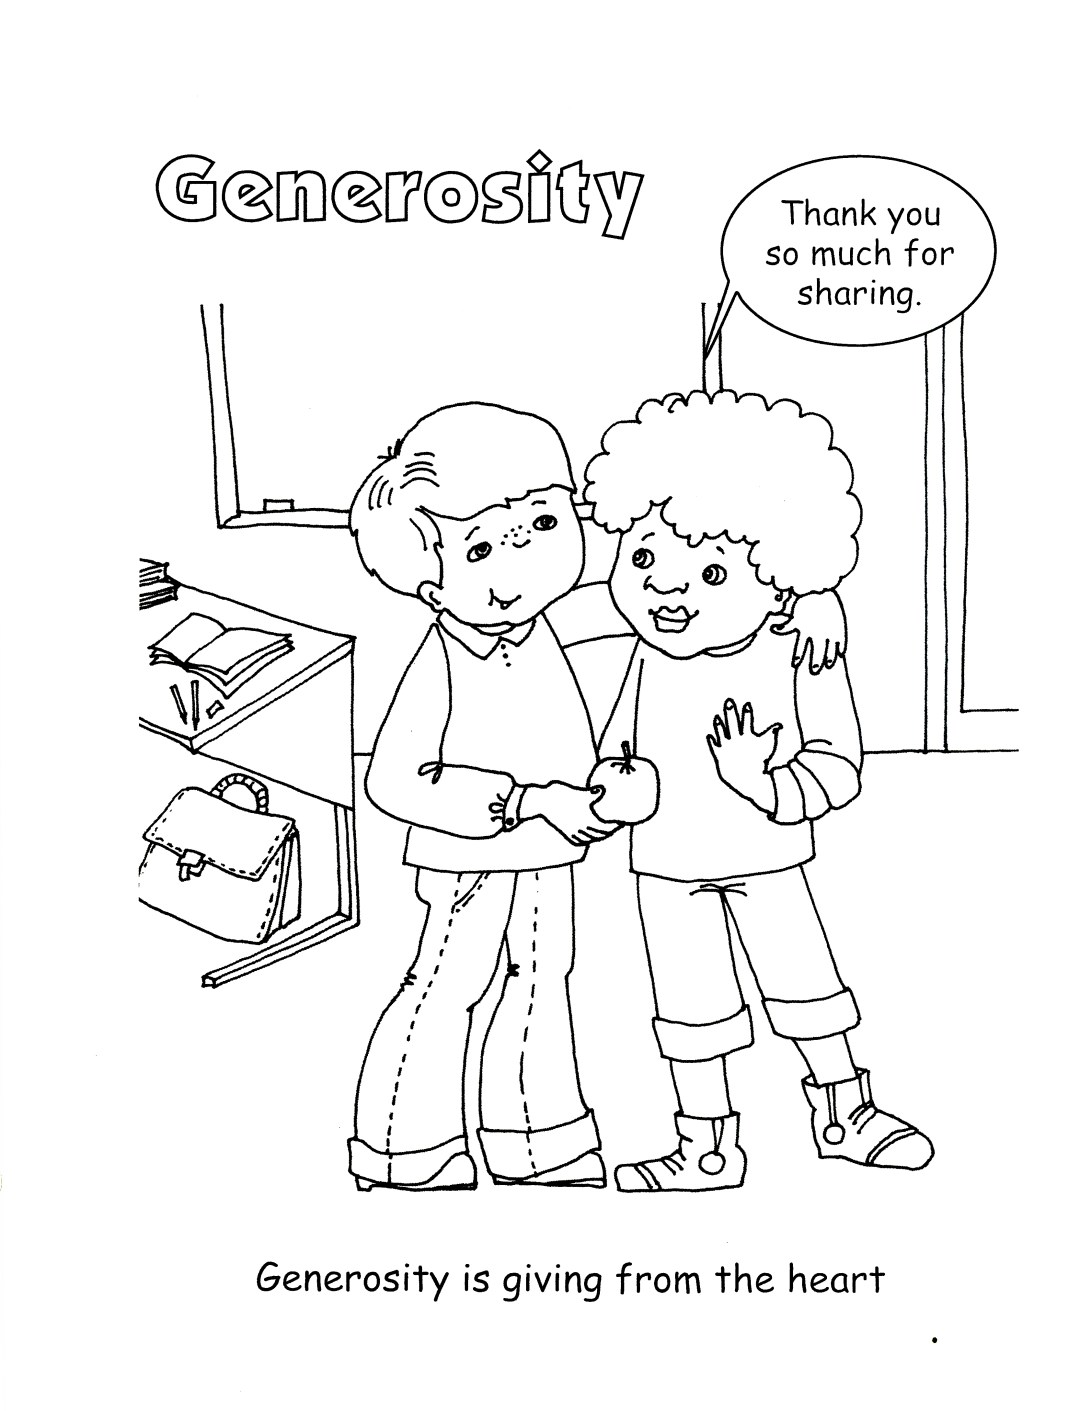 Generosity is giving from the heart